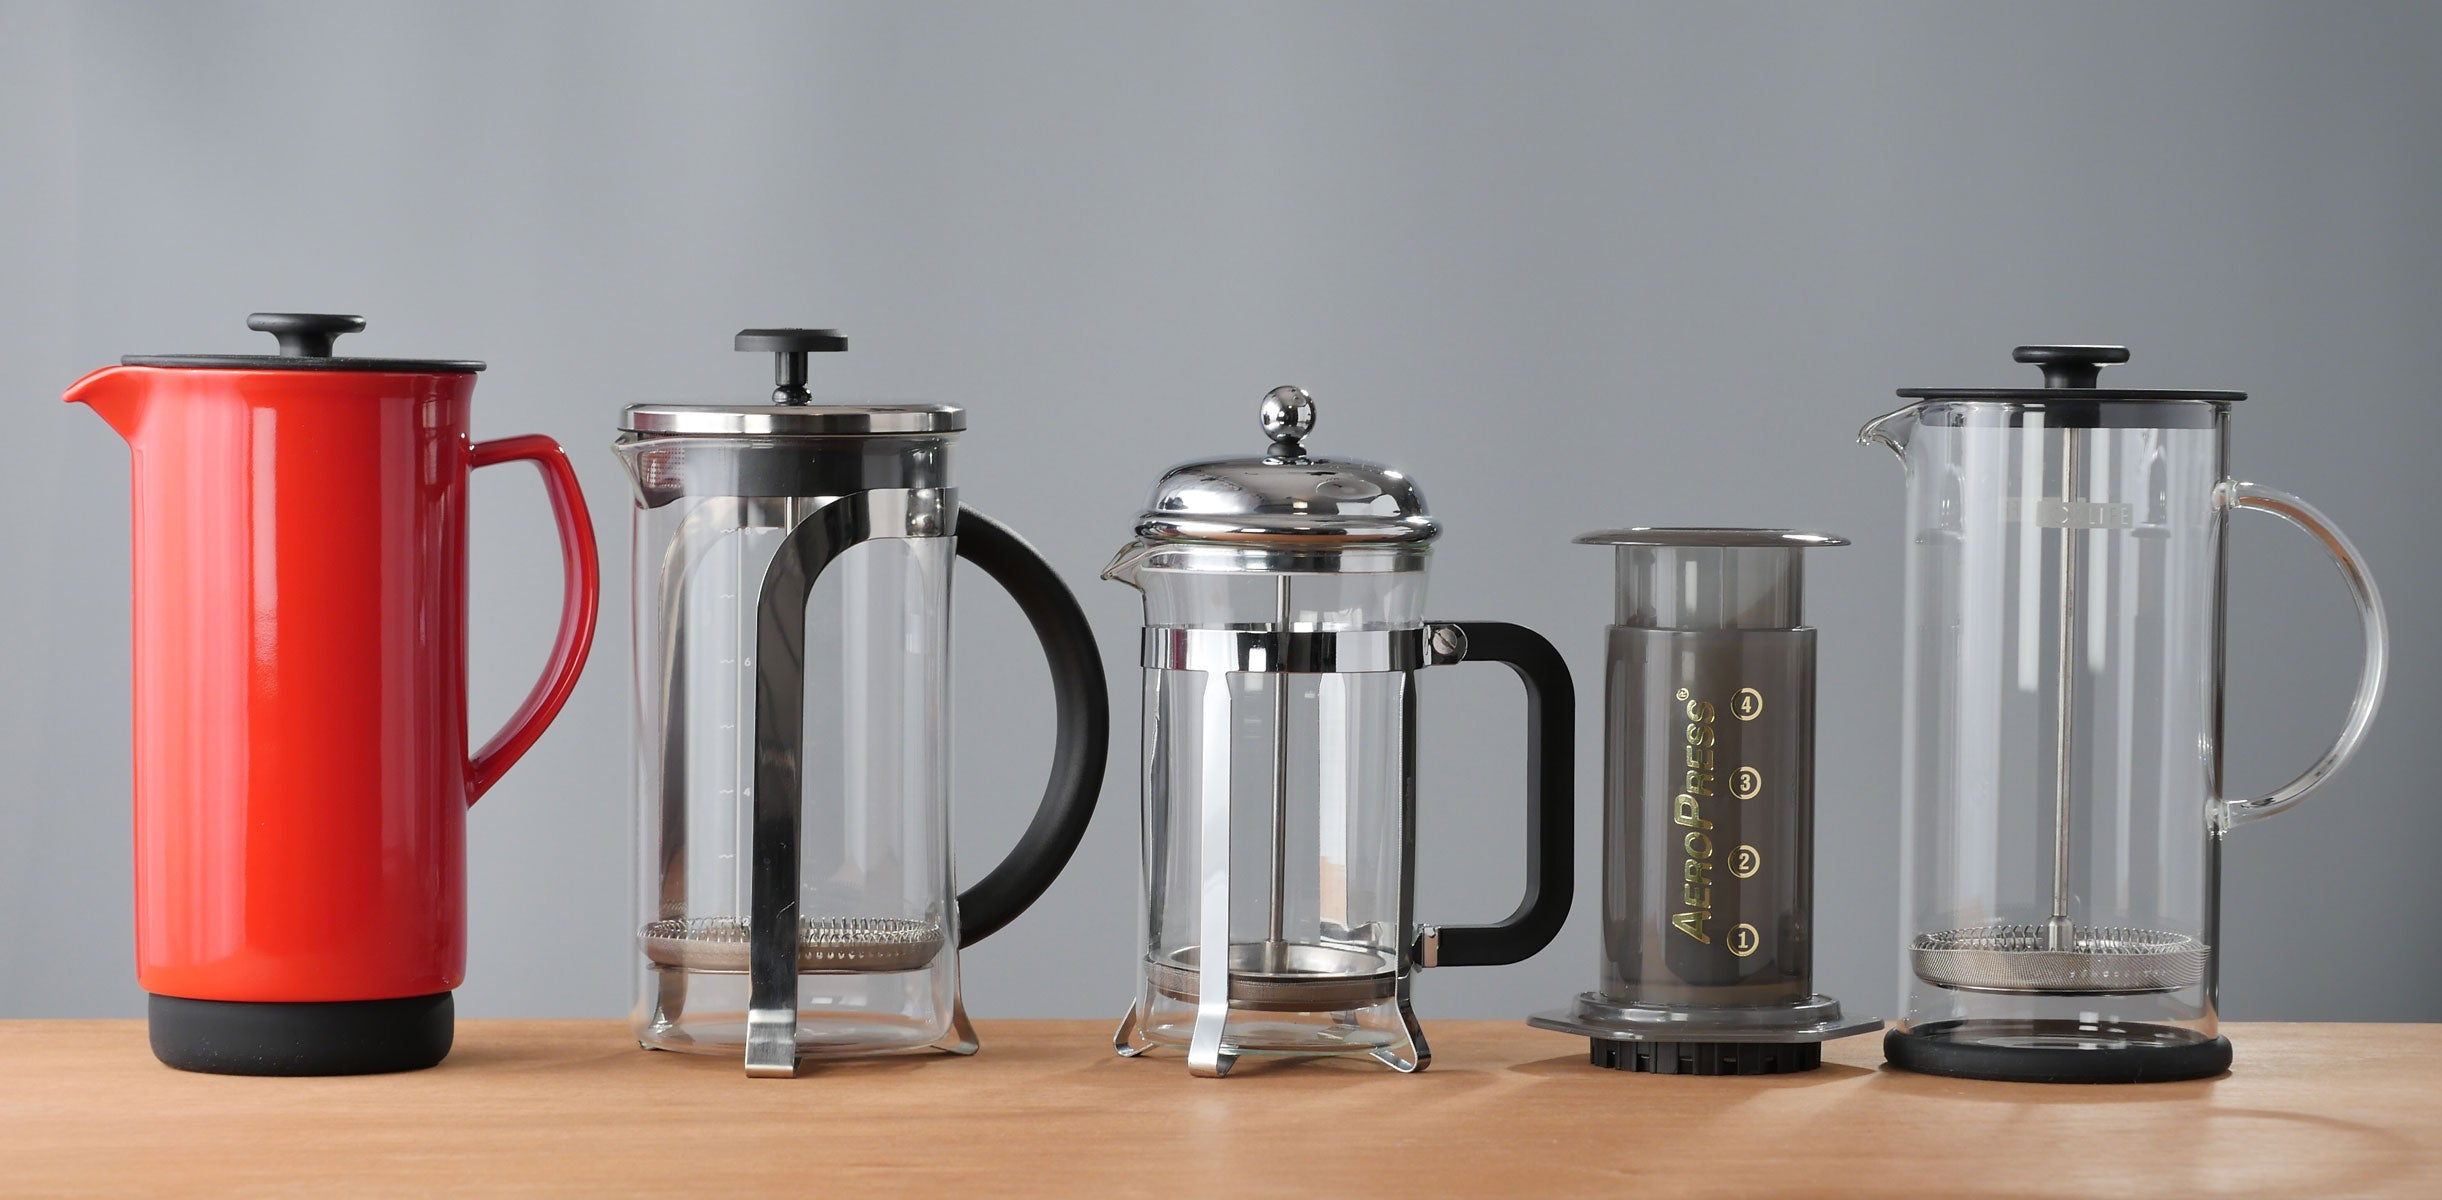 Best 7 french press coffee makers of 2016 How to make coffee with a coffee maker